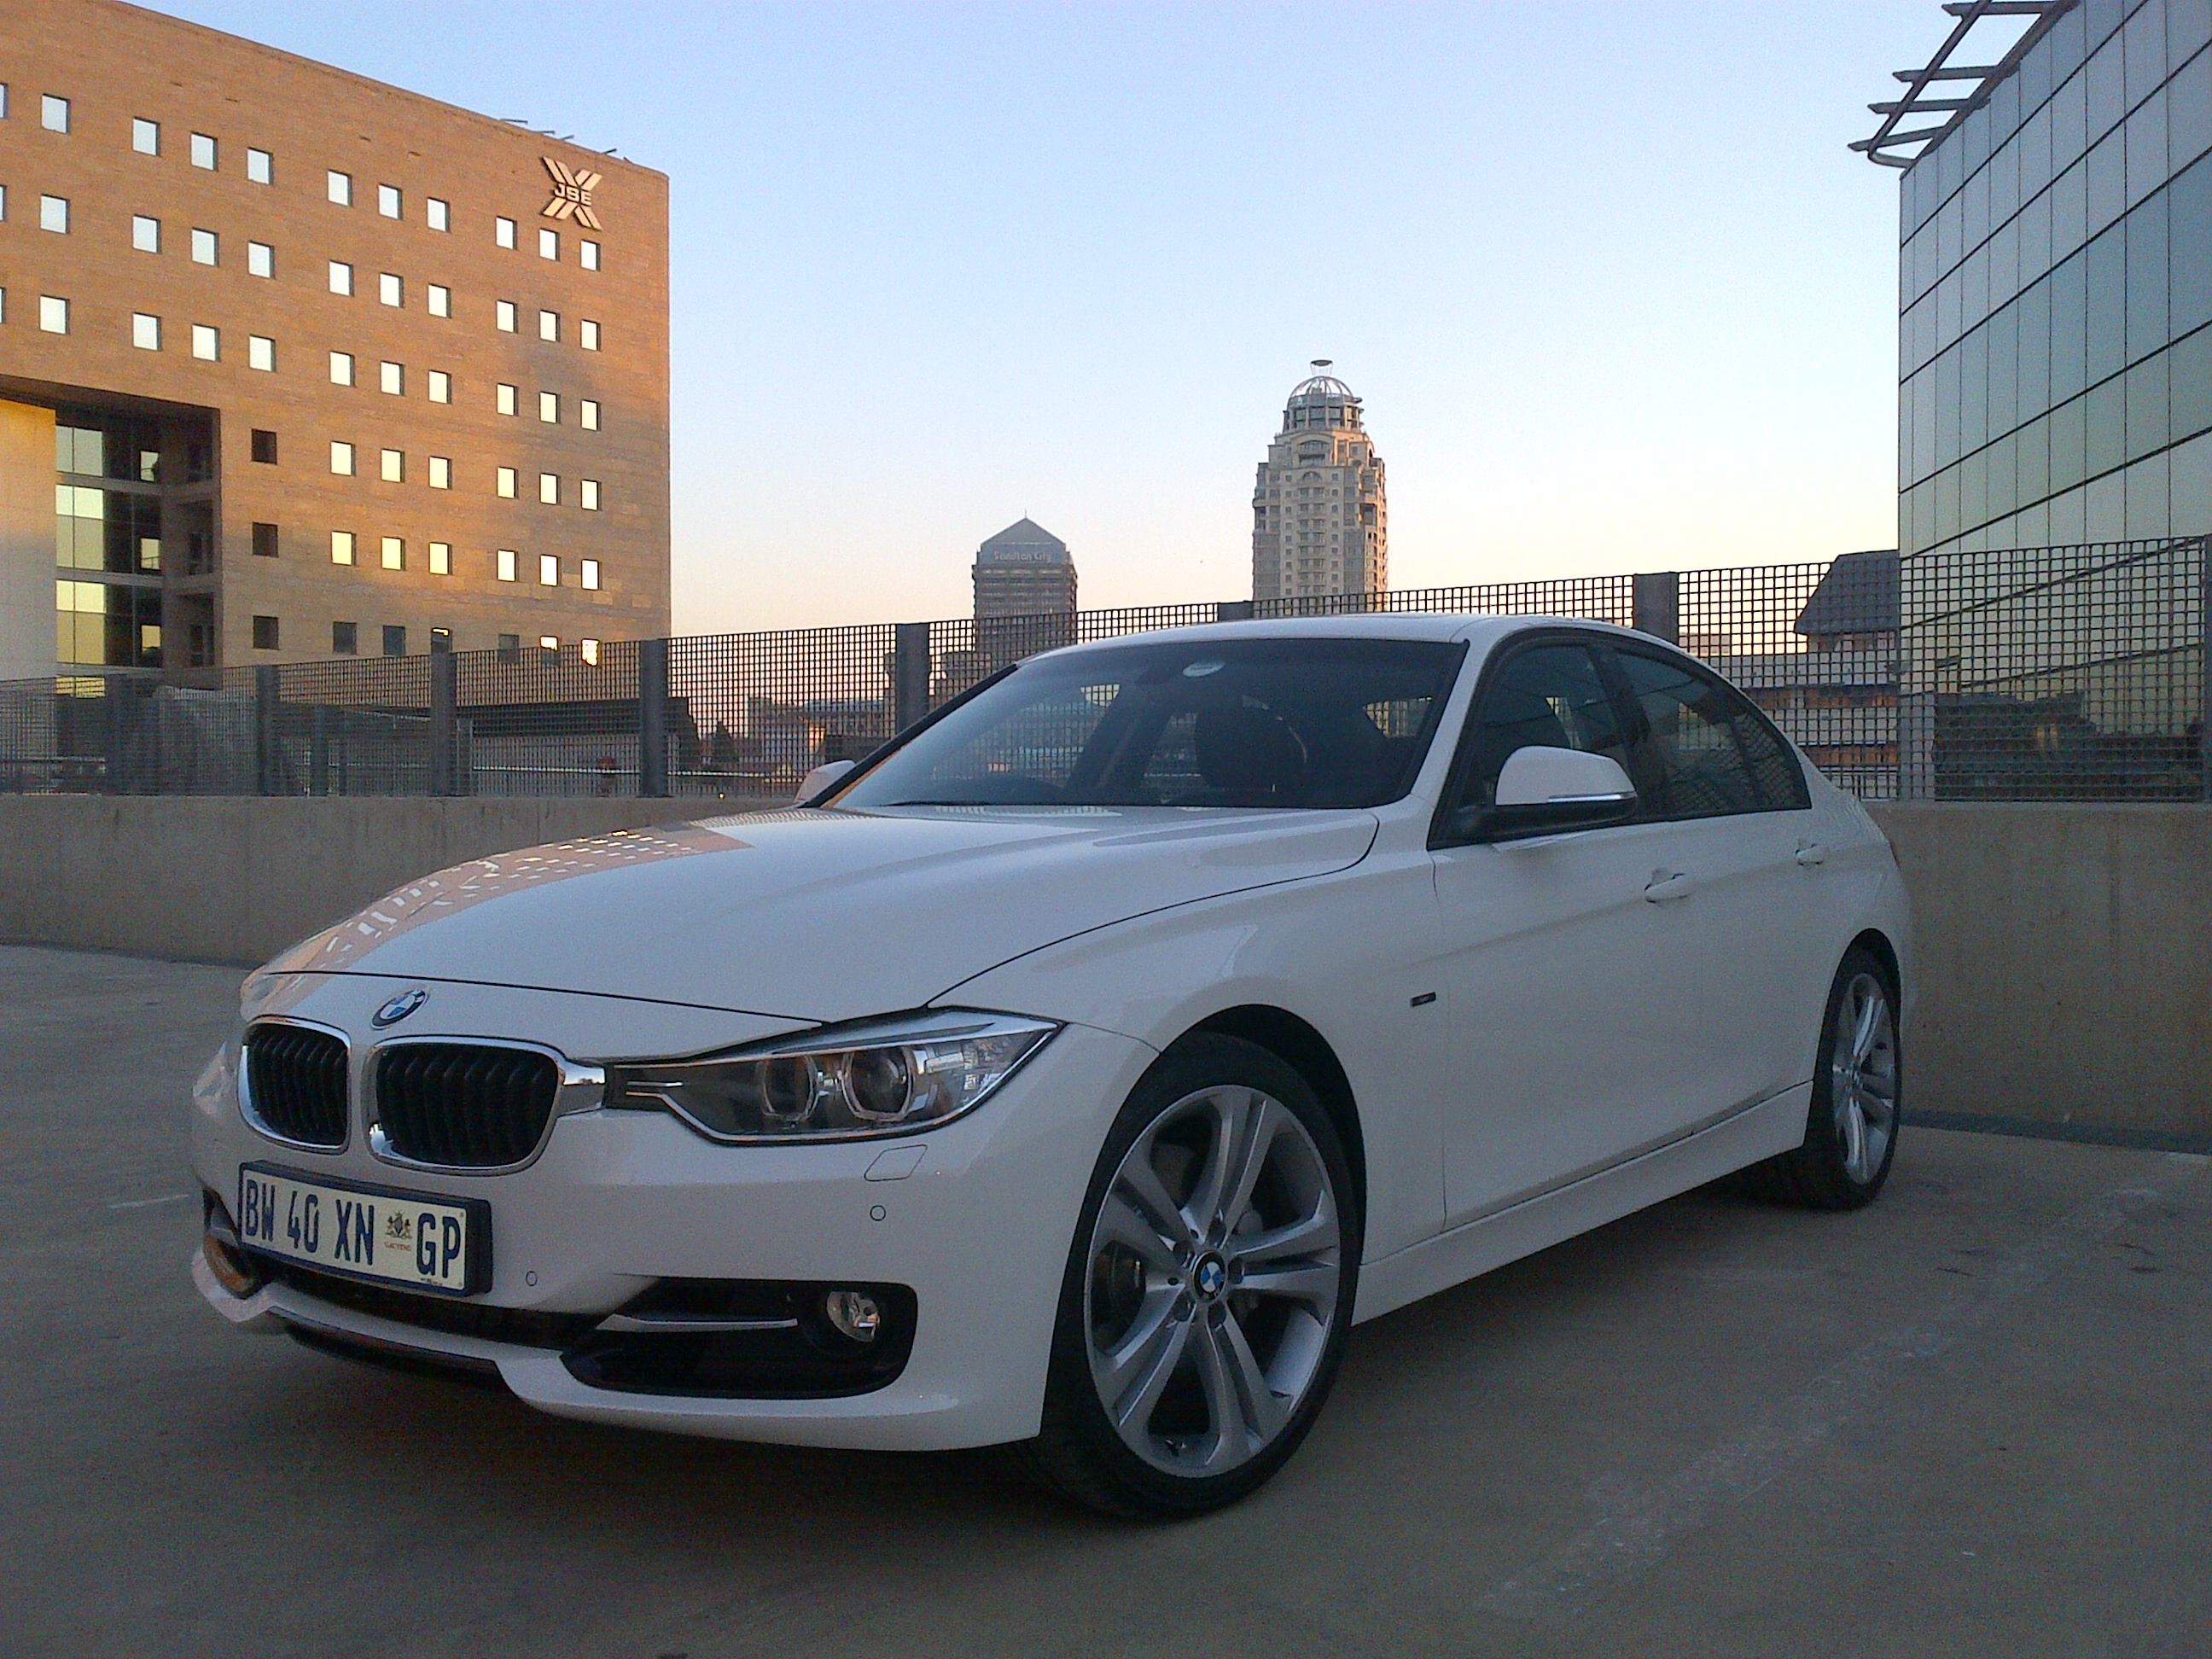 Tackling efficiency in the BMW 335i Sport Line